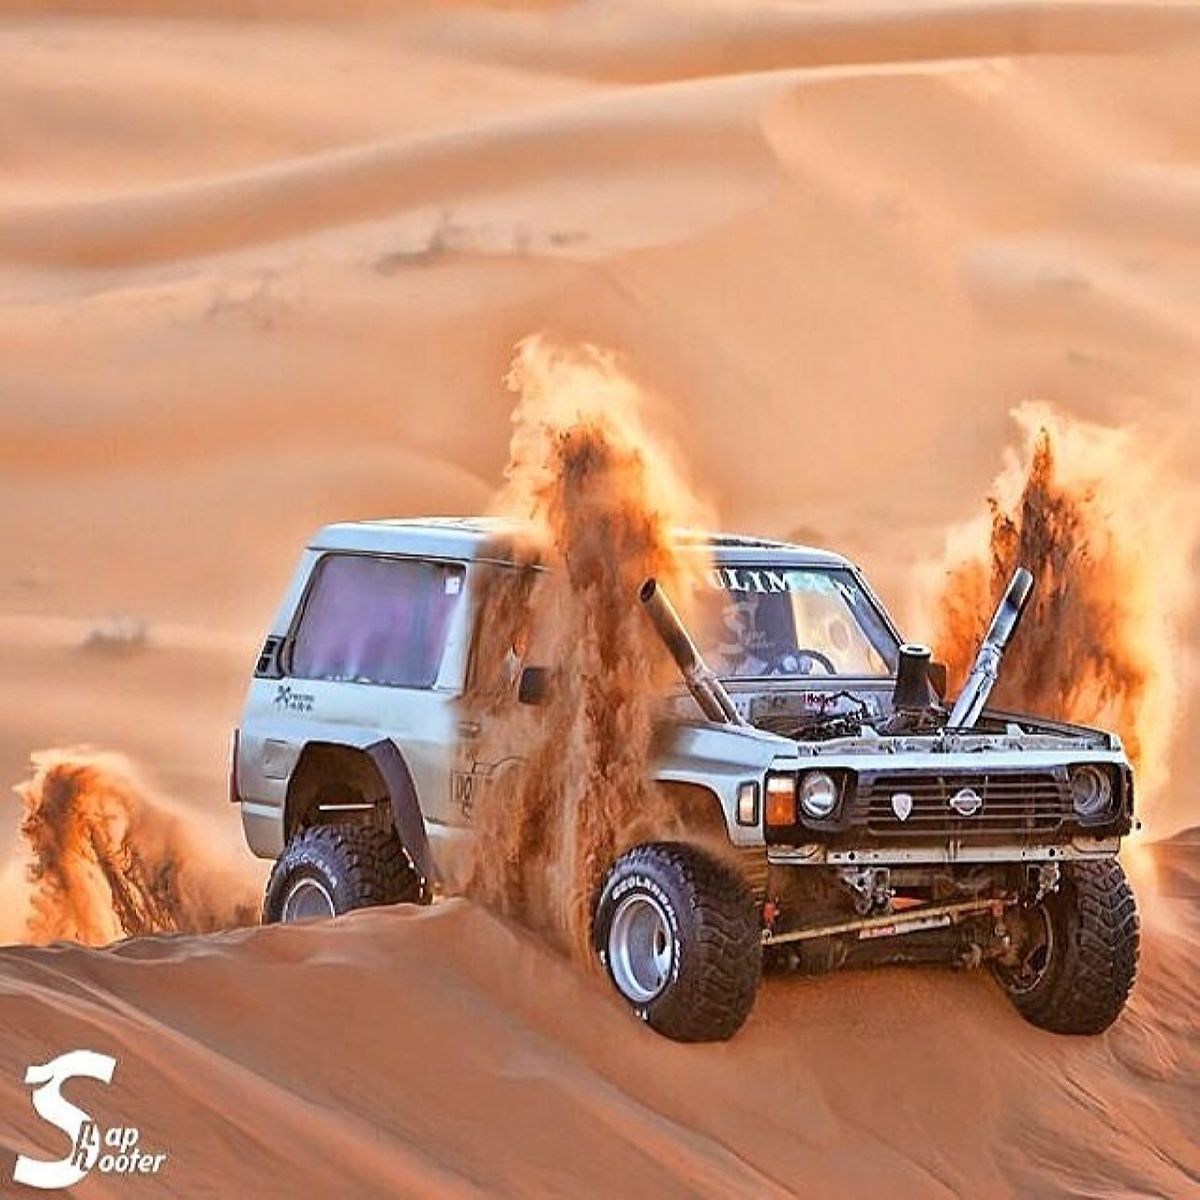 نيسان مزود - أعلى Untitled — Dune Bashing In A Tuned Nissan Patrol Safari. From. أفكار